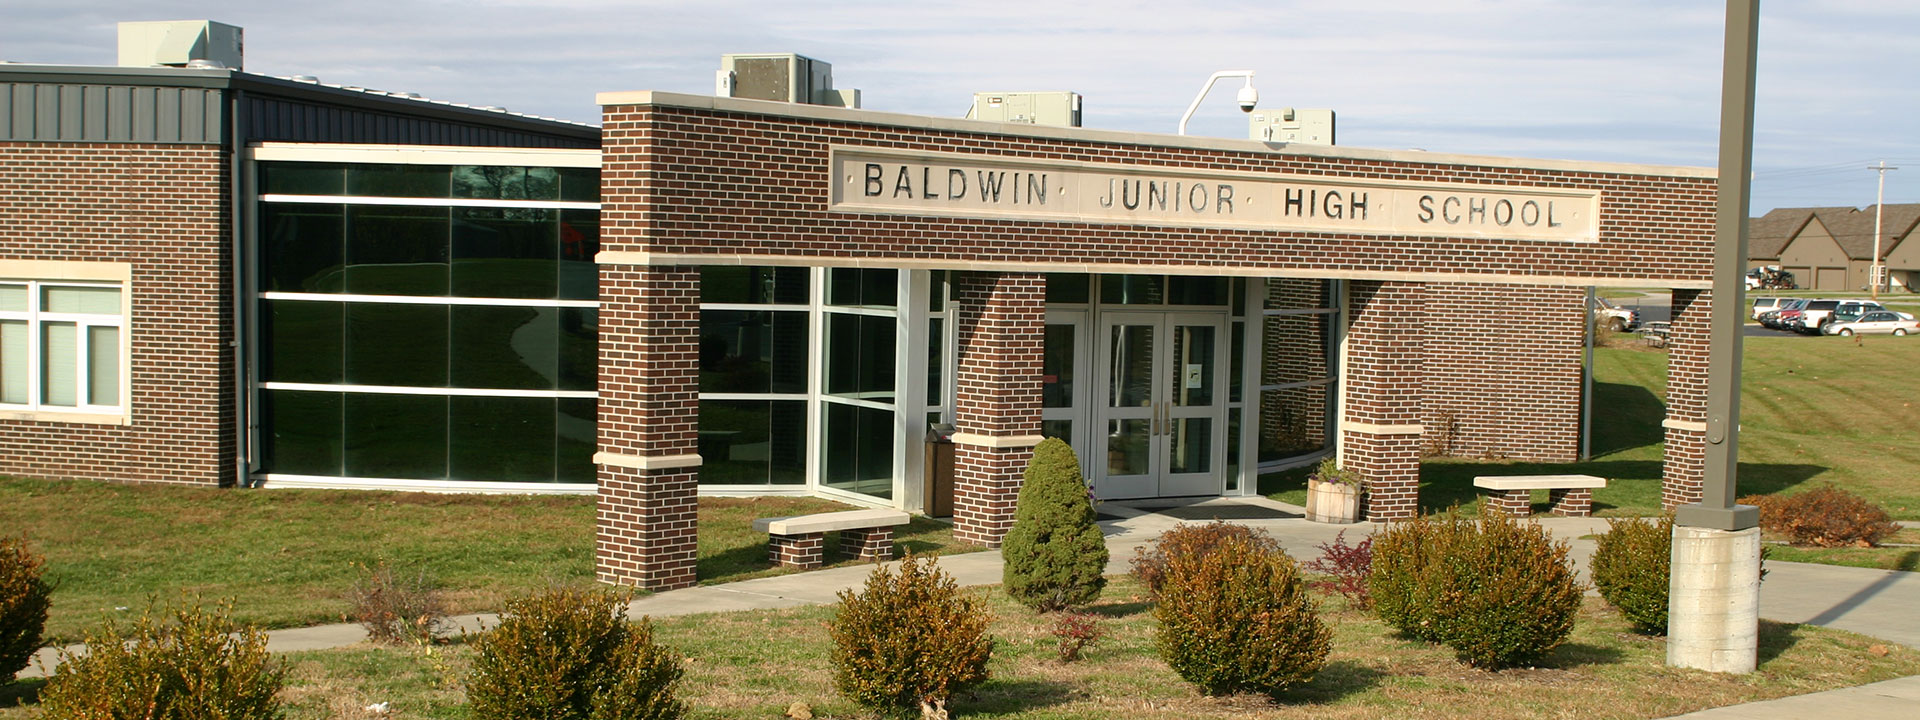 Photo of the Baldwin Junior HIgh School building exterior